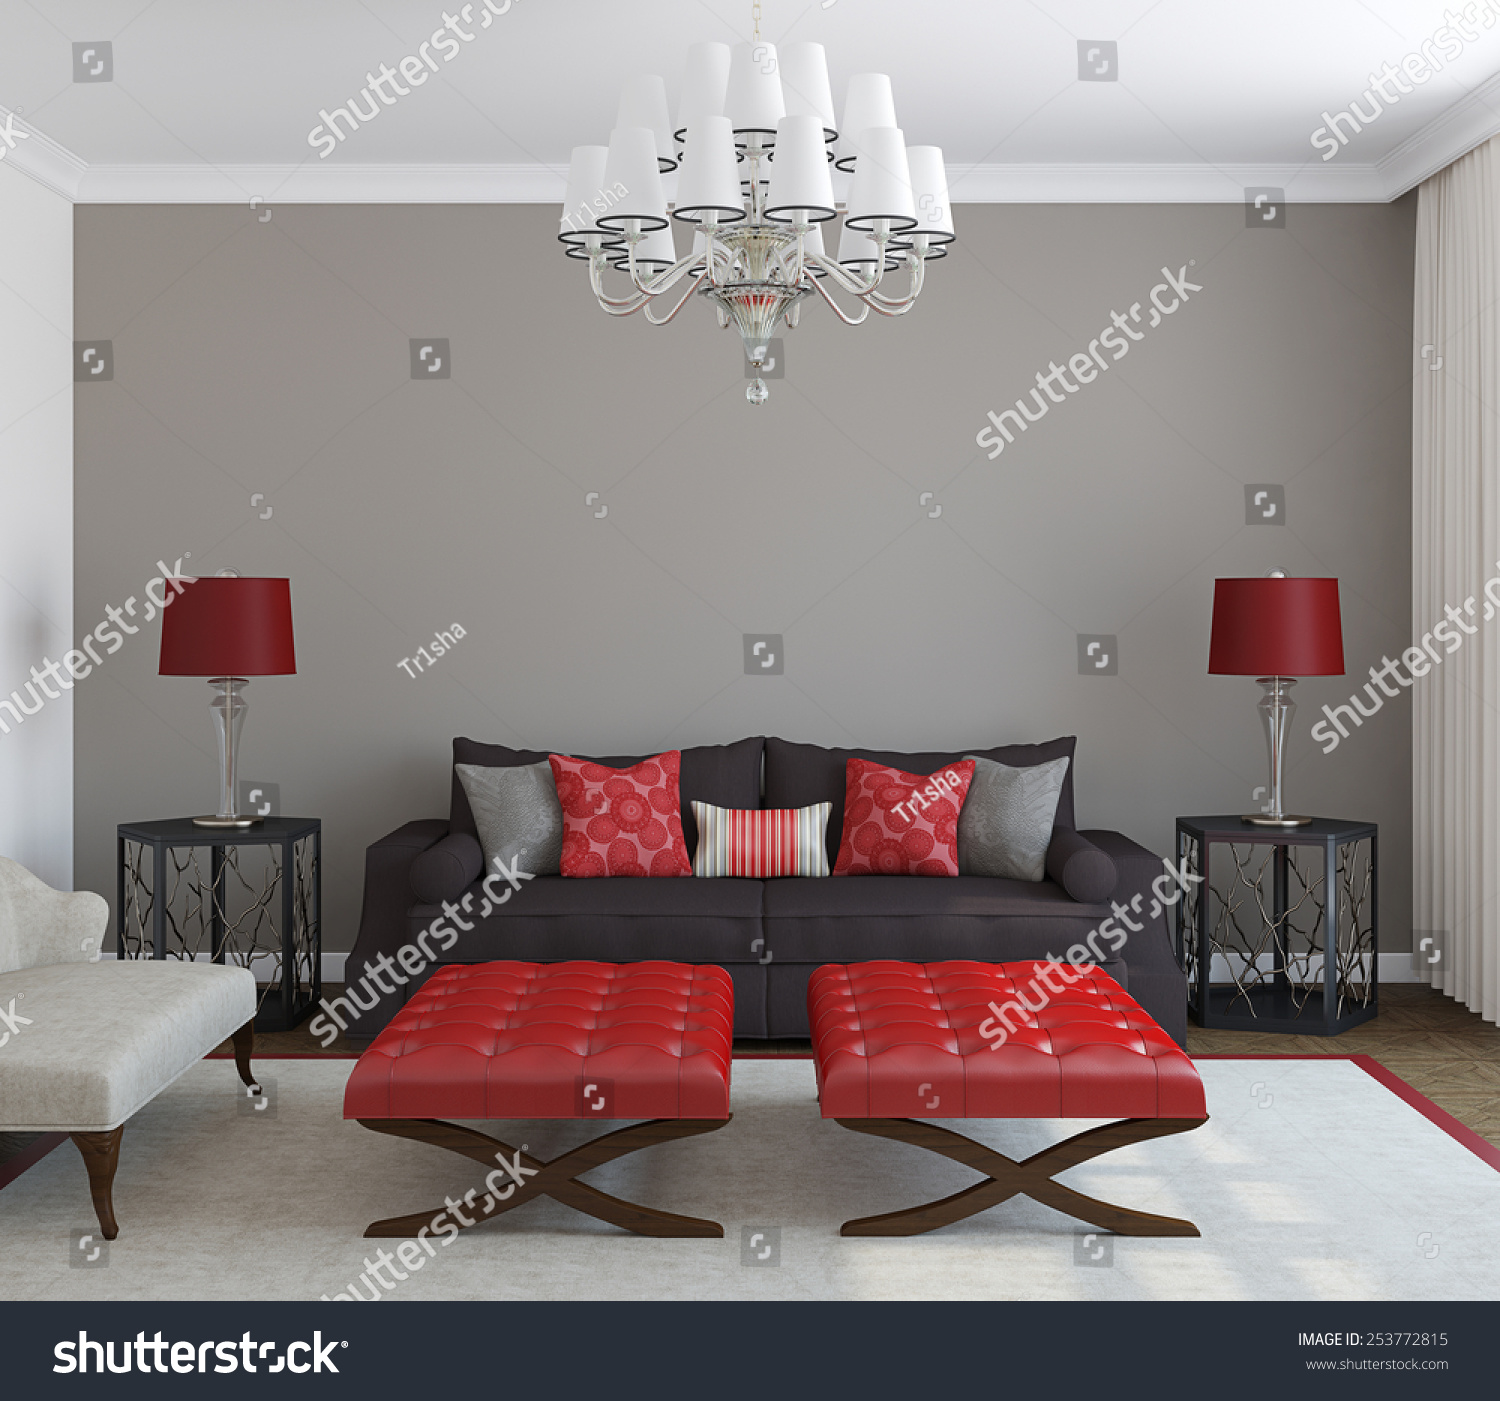 Modern living room interior frontal view 3d render for Living room 3d view